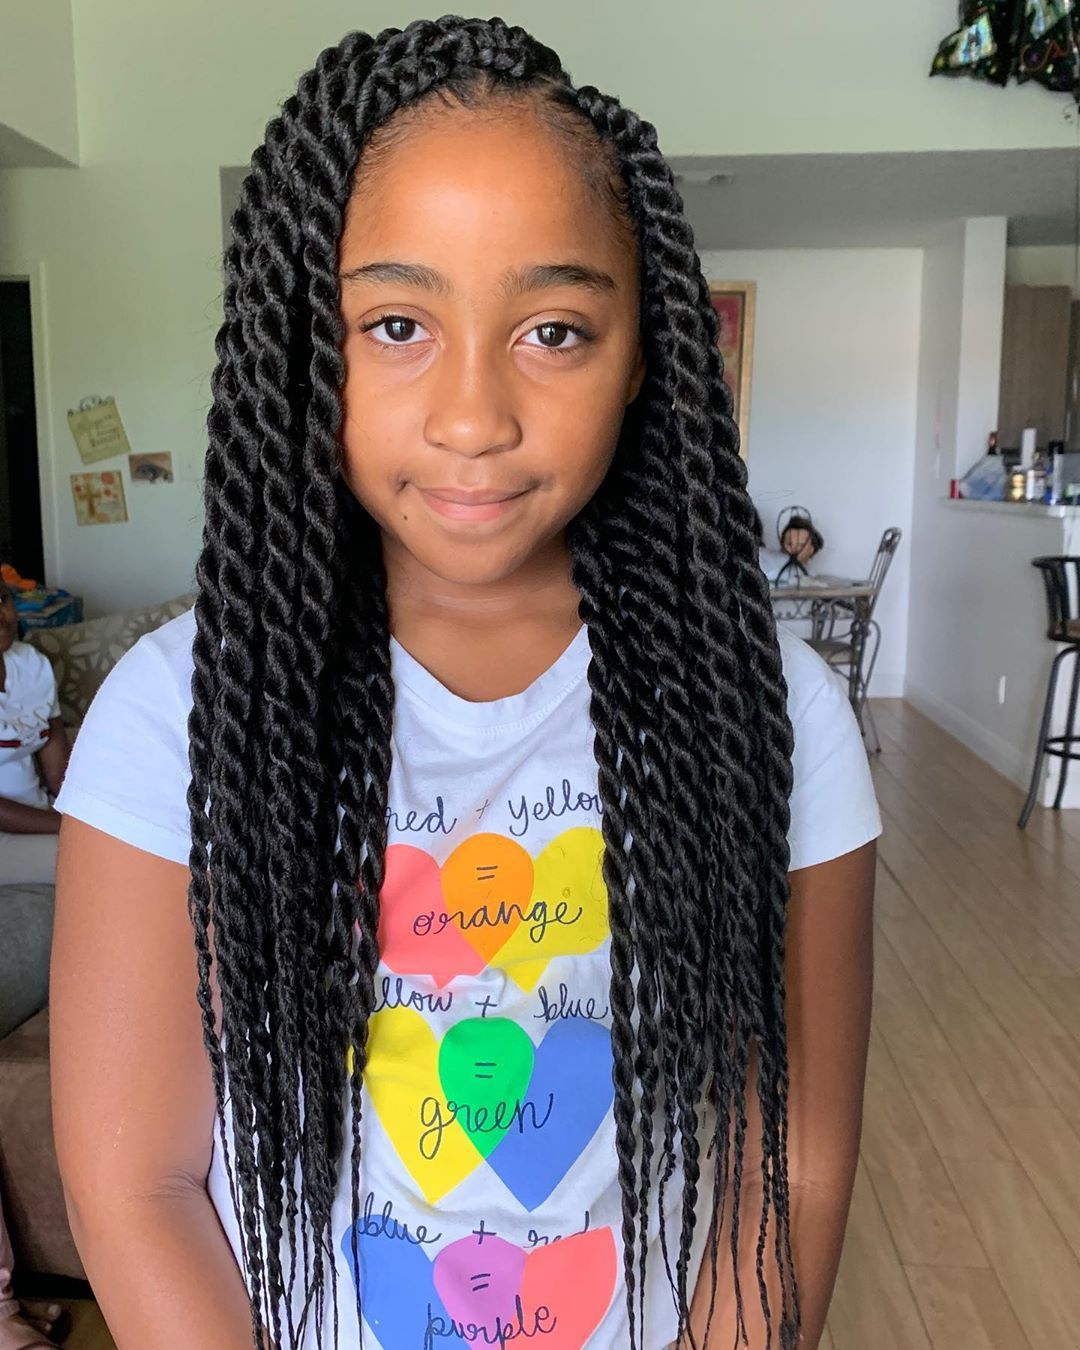 Cutest Hairstyles For Little Black Girls Little Girls Hairstyles African American Girls Hairst Cute Braided Hairstyles Little Girl Hairstyles Kids Hairstyles